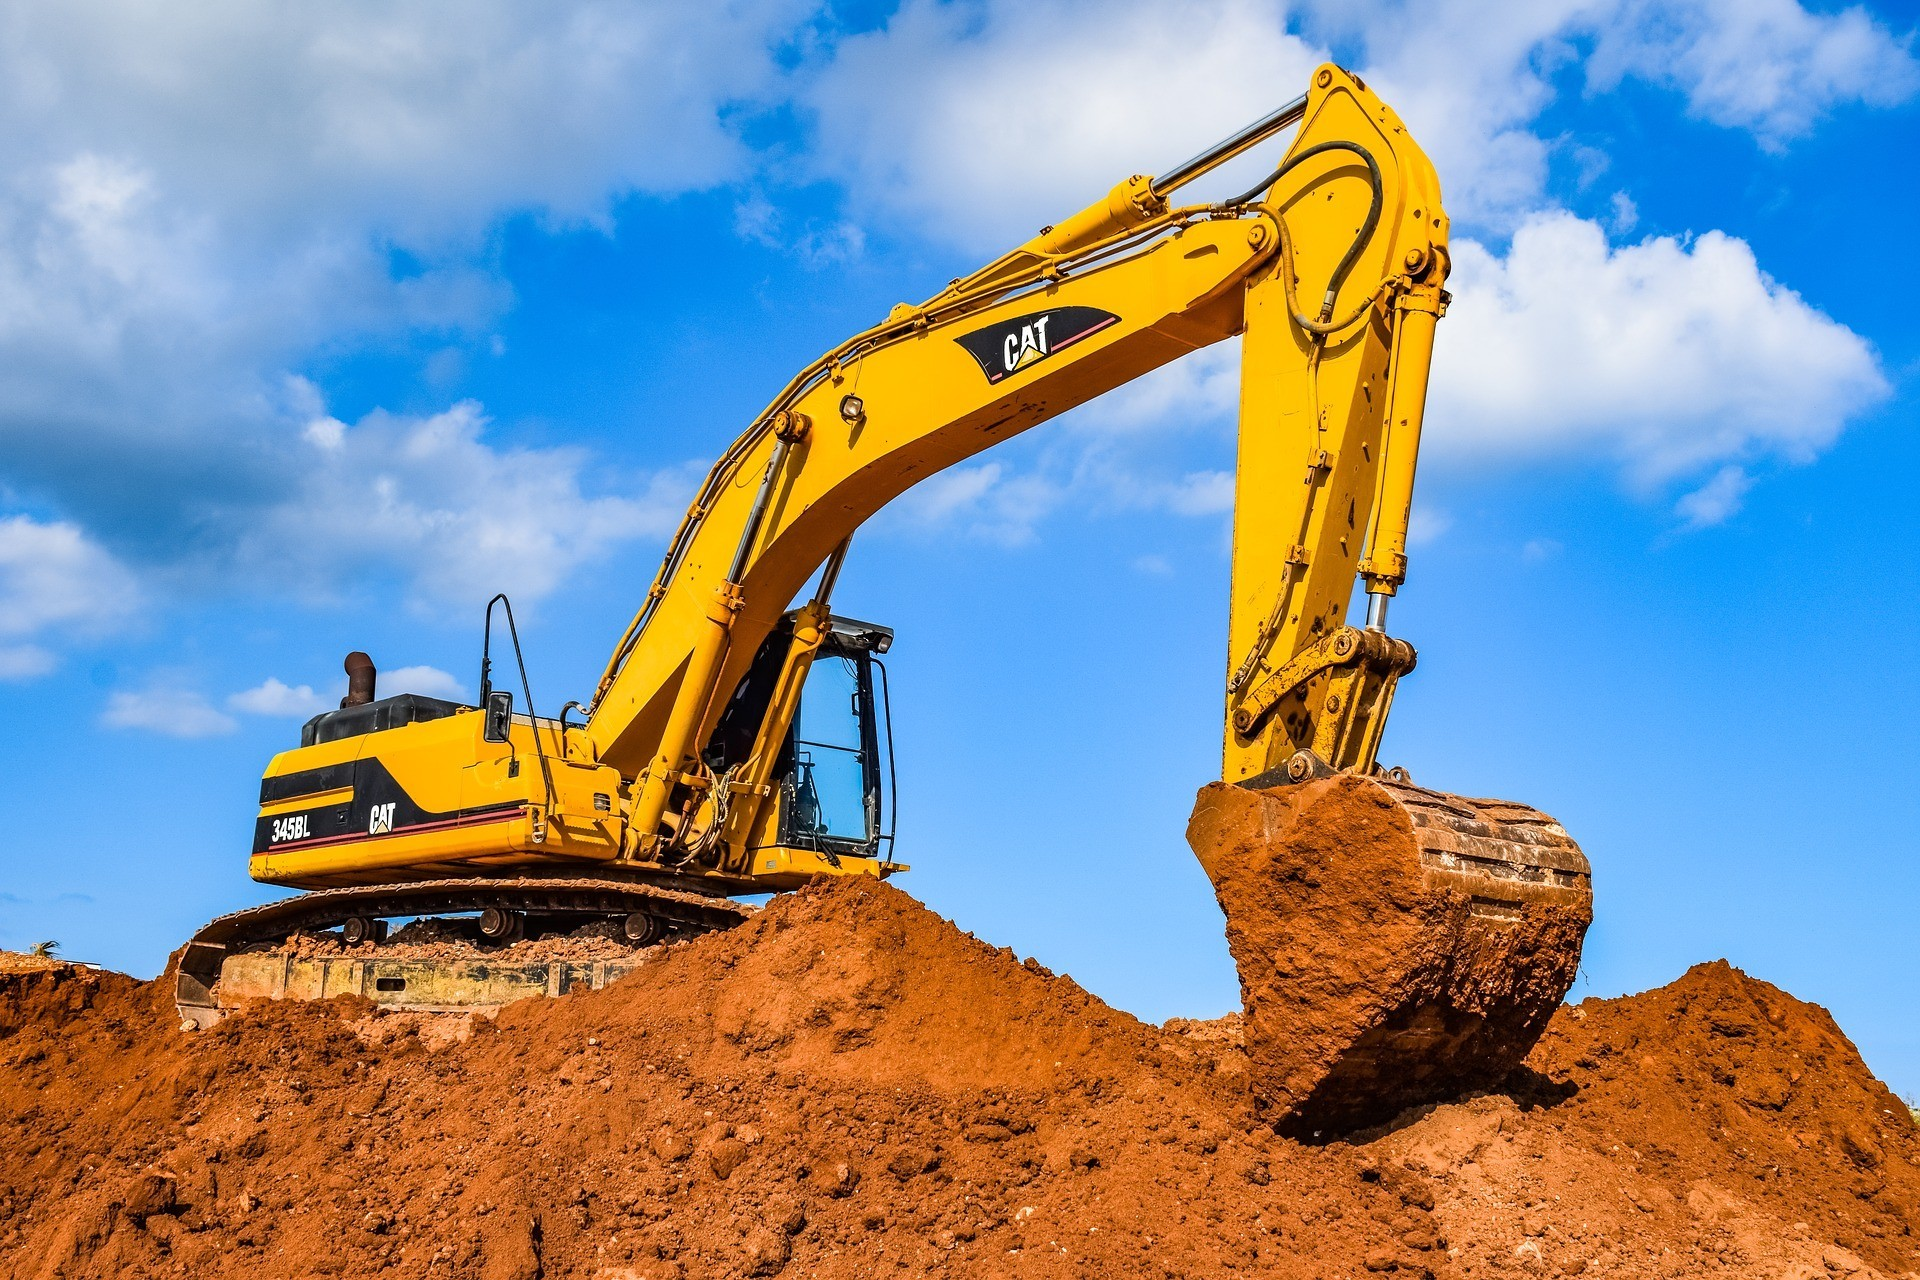 Filing a Wrongful Death Lawsuit After a Construction